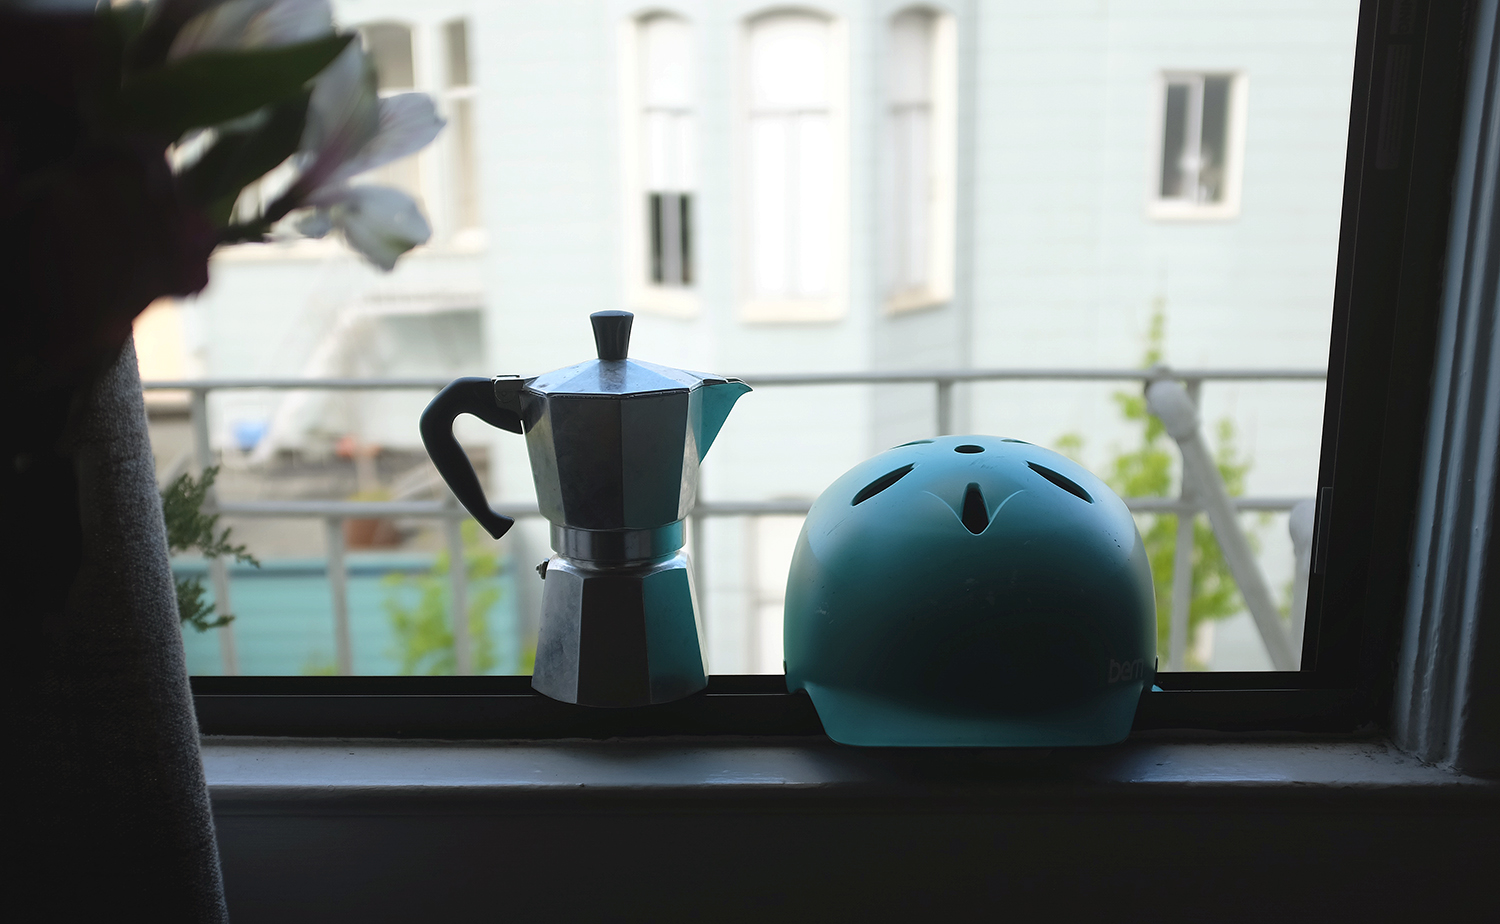 Allison Shiman @theshiman Product Designer at AnyPerk My morning routine is making coffee, opening all the windows, then riding my bike to work. My bike ride is often the best part of my day, it really wakes me up!